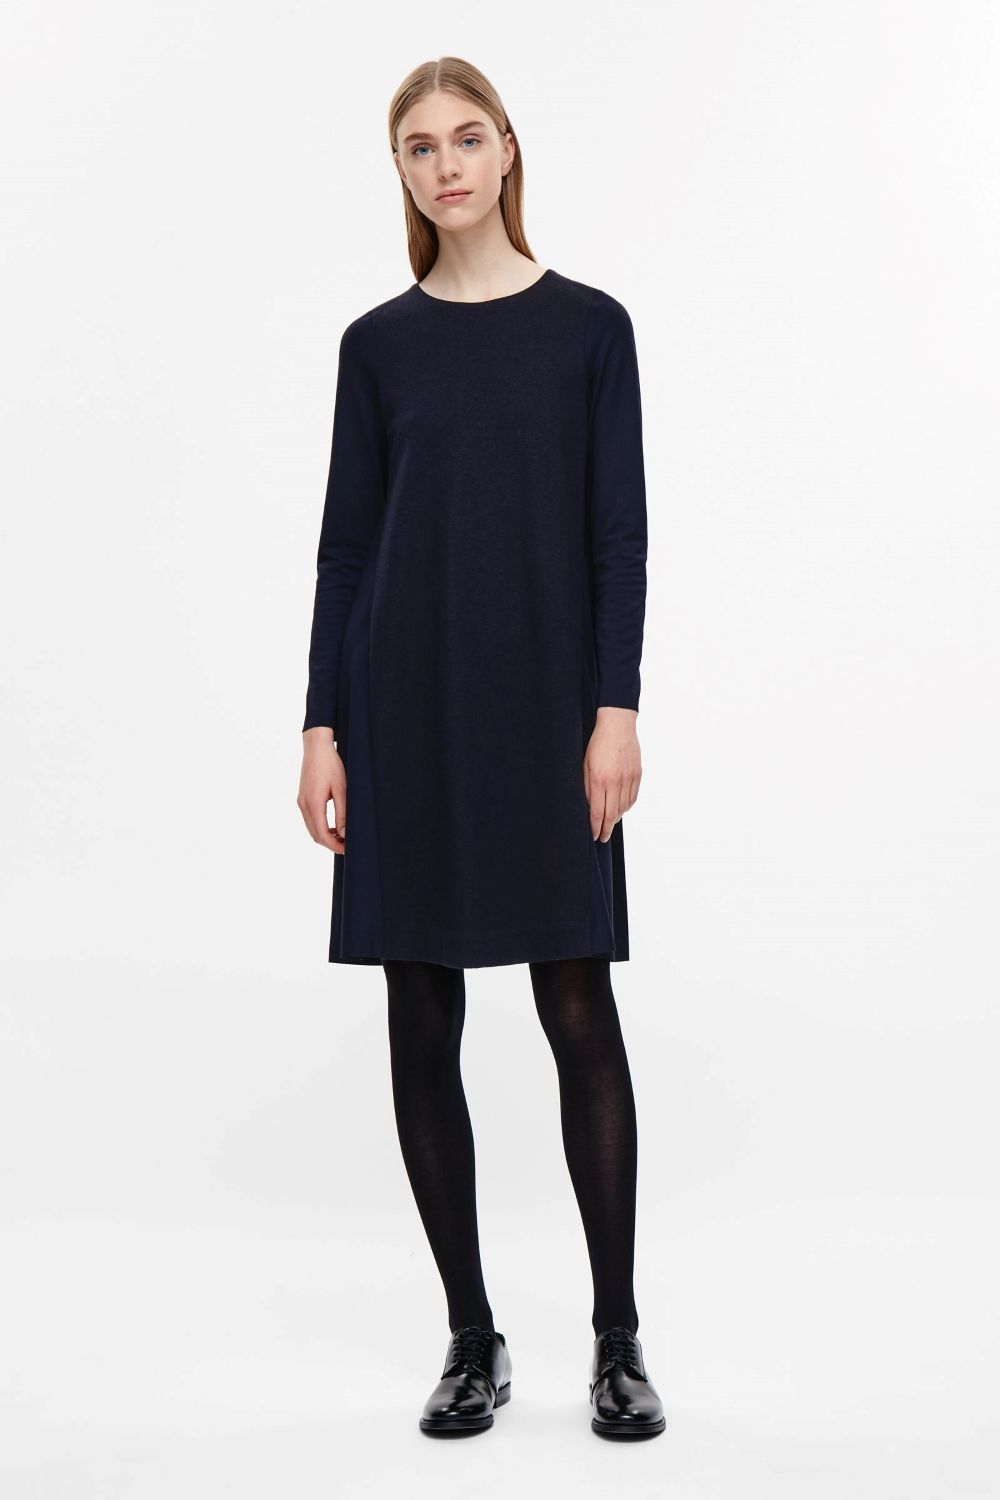 Cos image of contrast panel jersey dress in navy work style